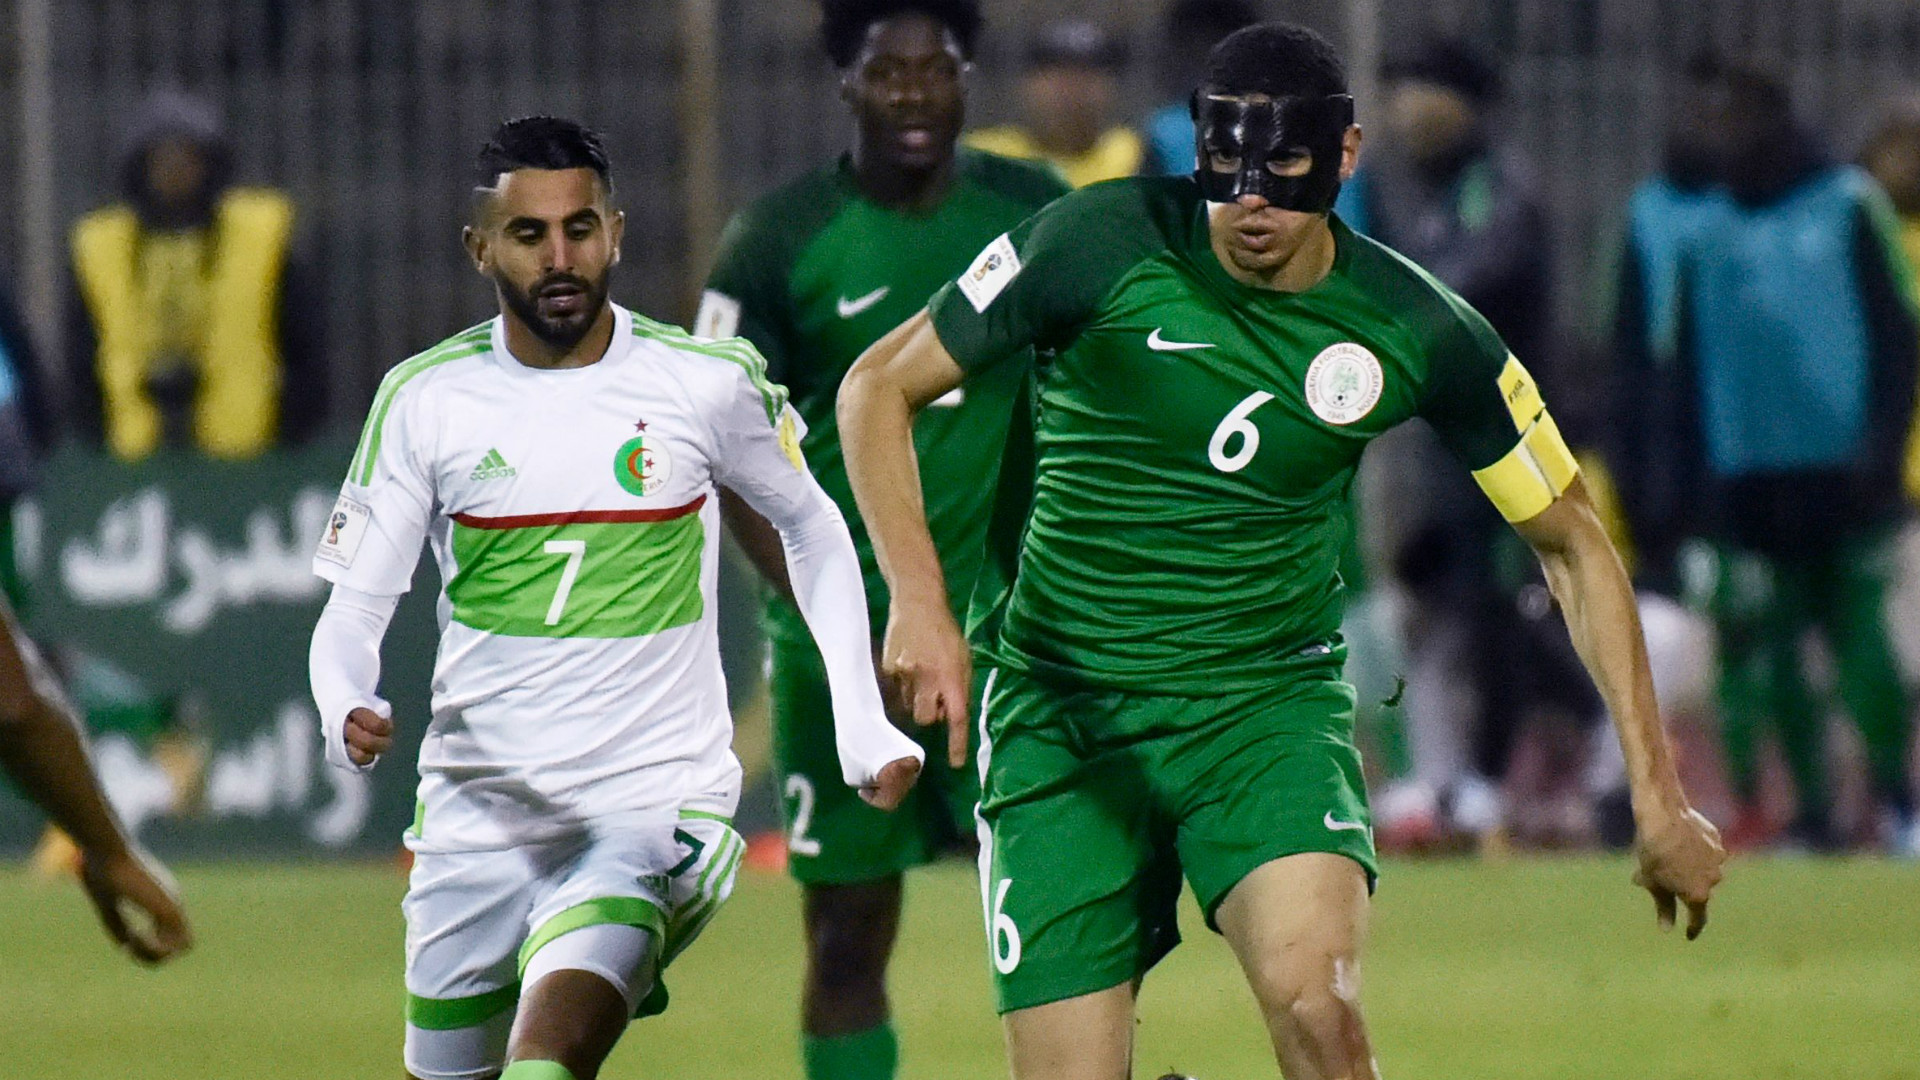 Aguero collapses at halftime as Argentina lose to Nigeria